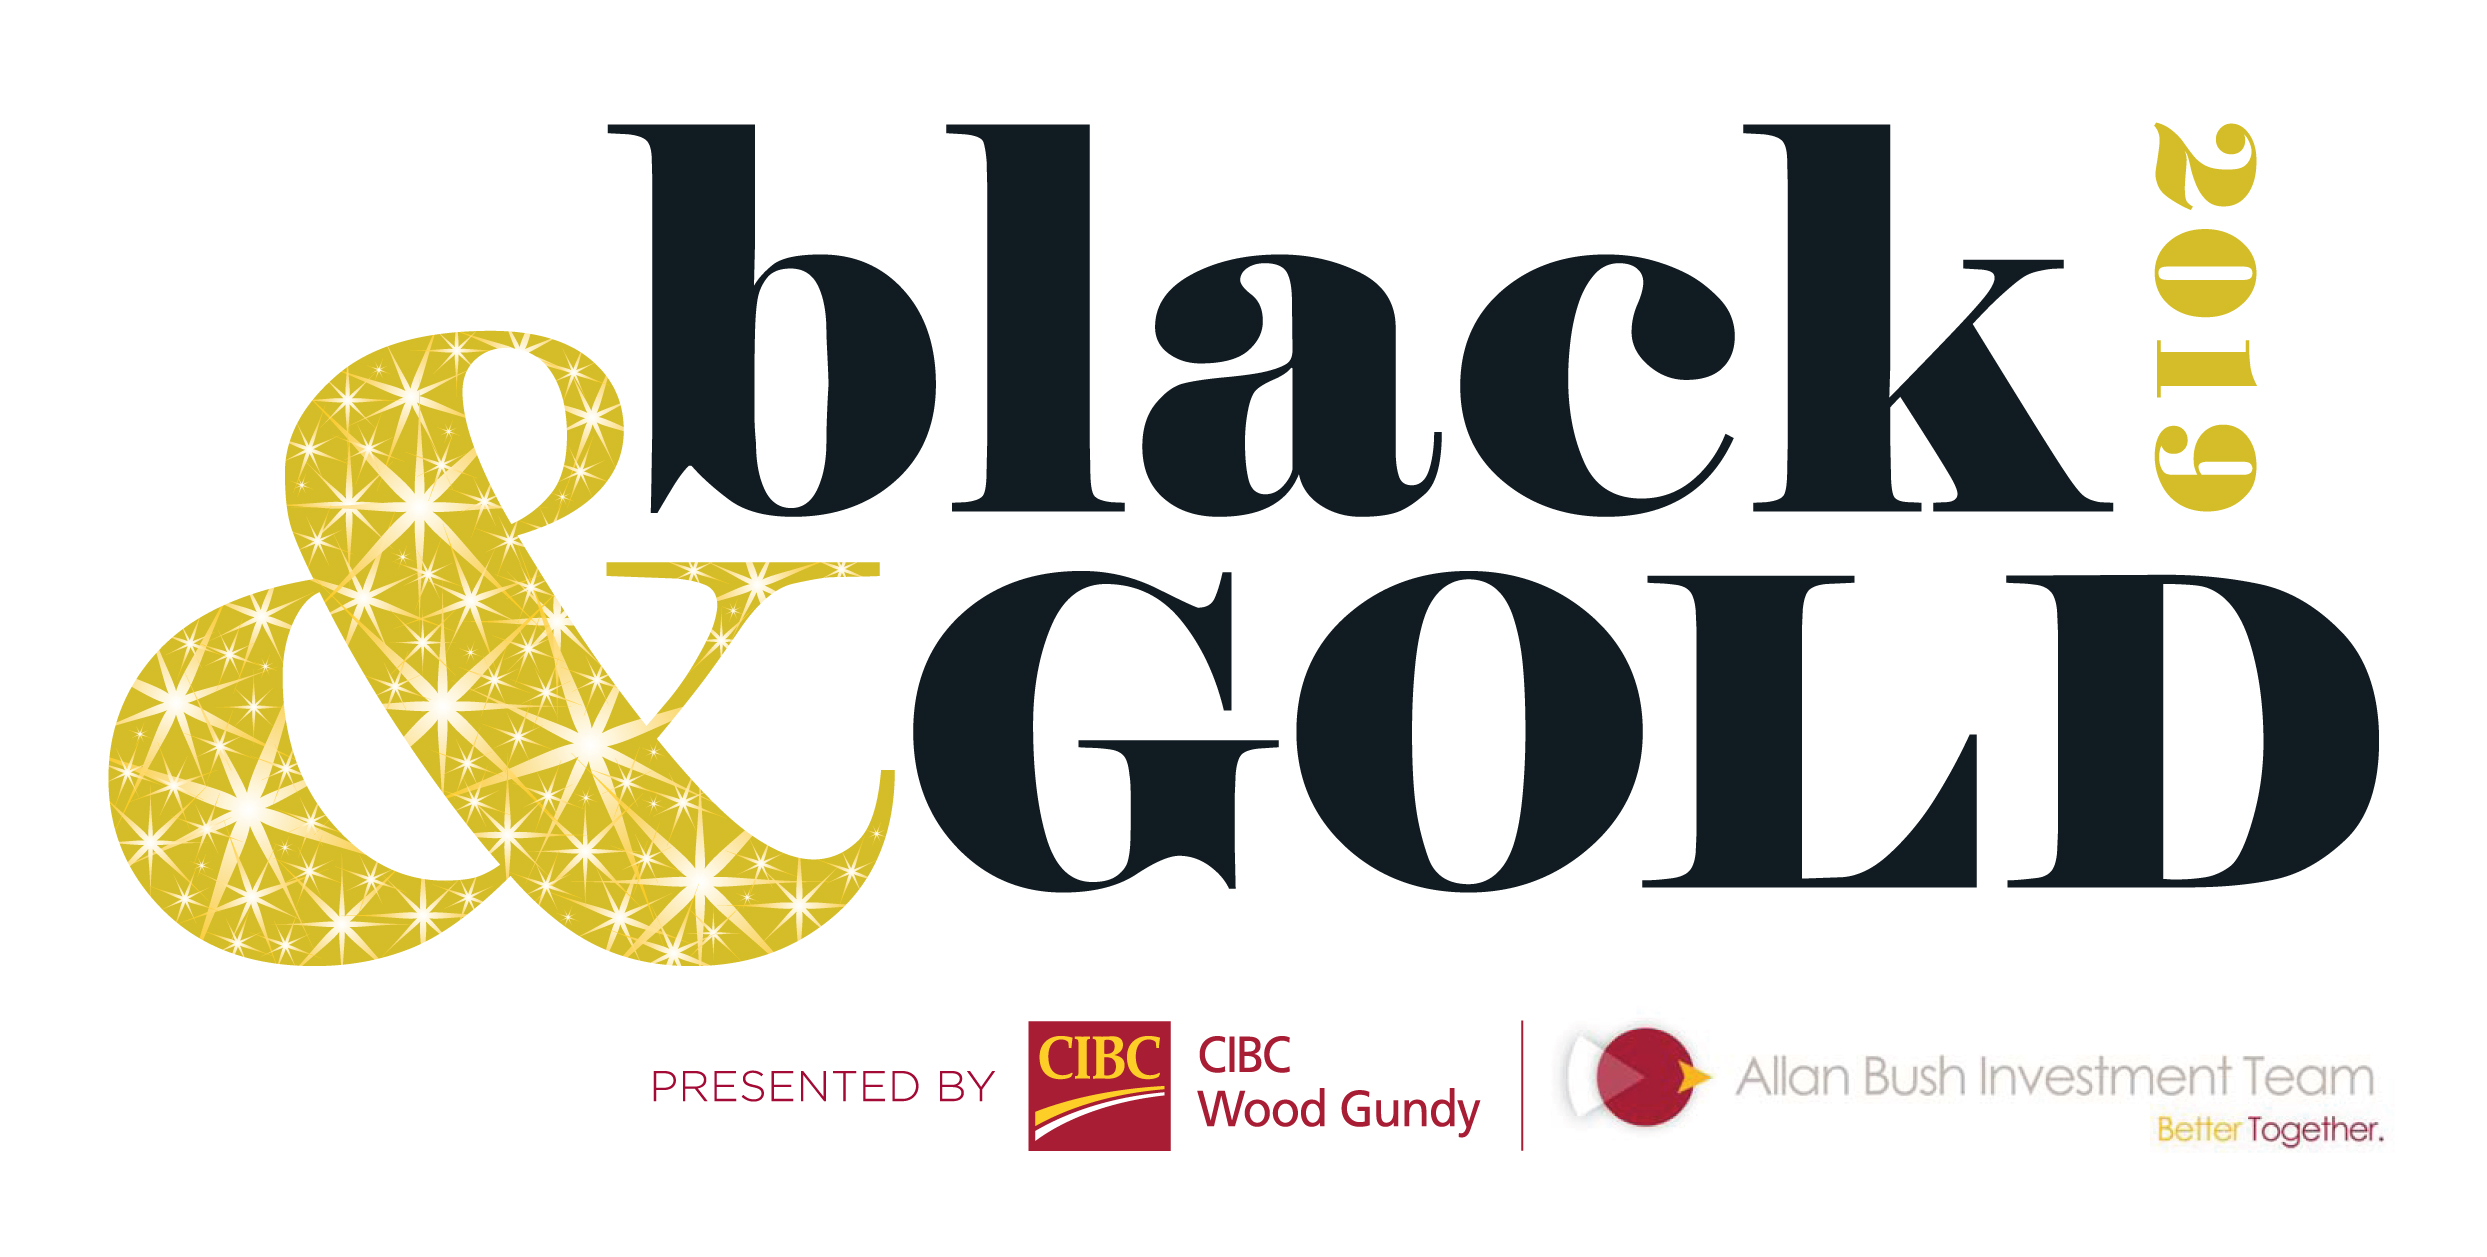 Black & Gold 2019 Presented by CIBC Wood Gundy - Allan Bush logo